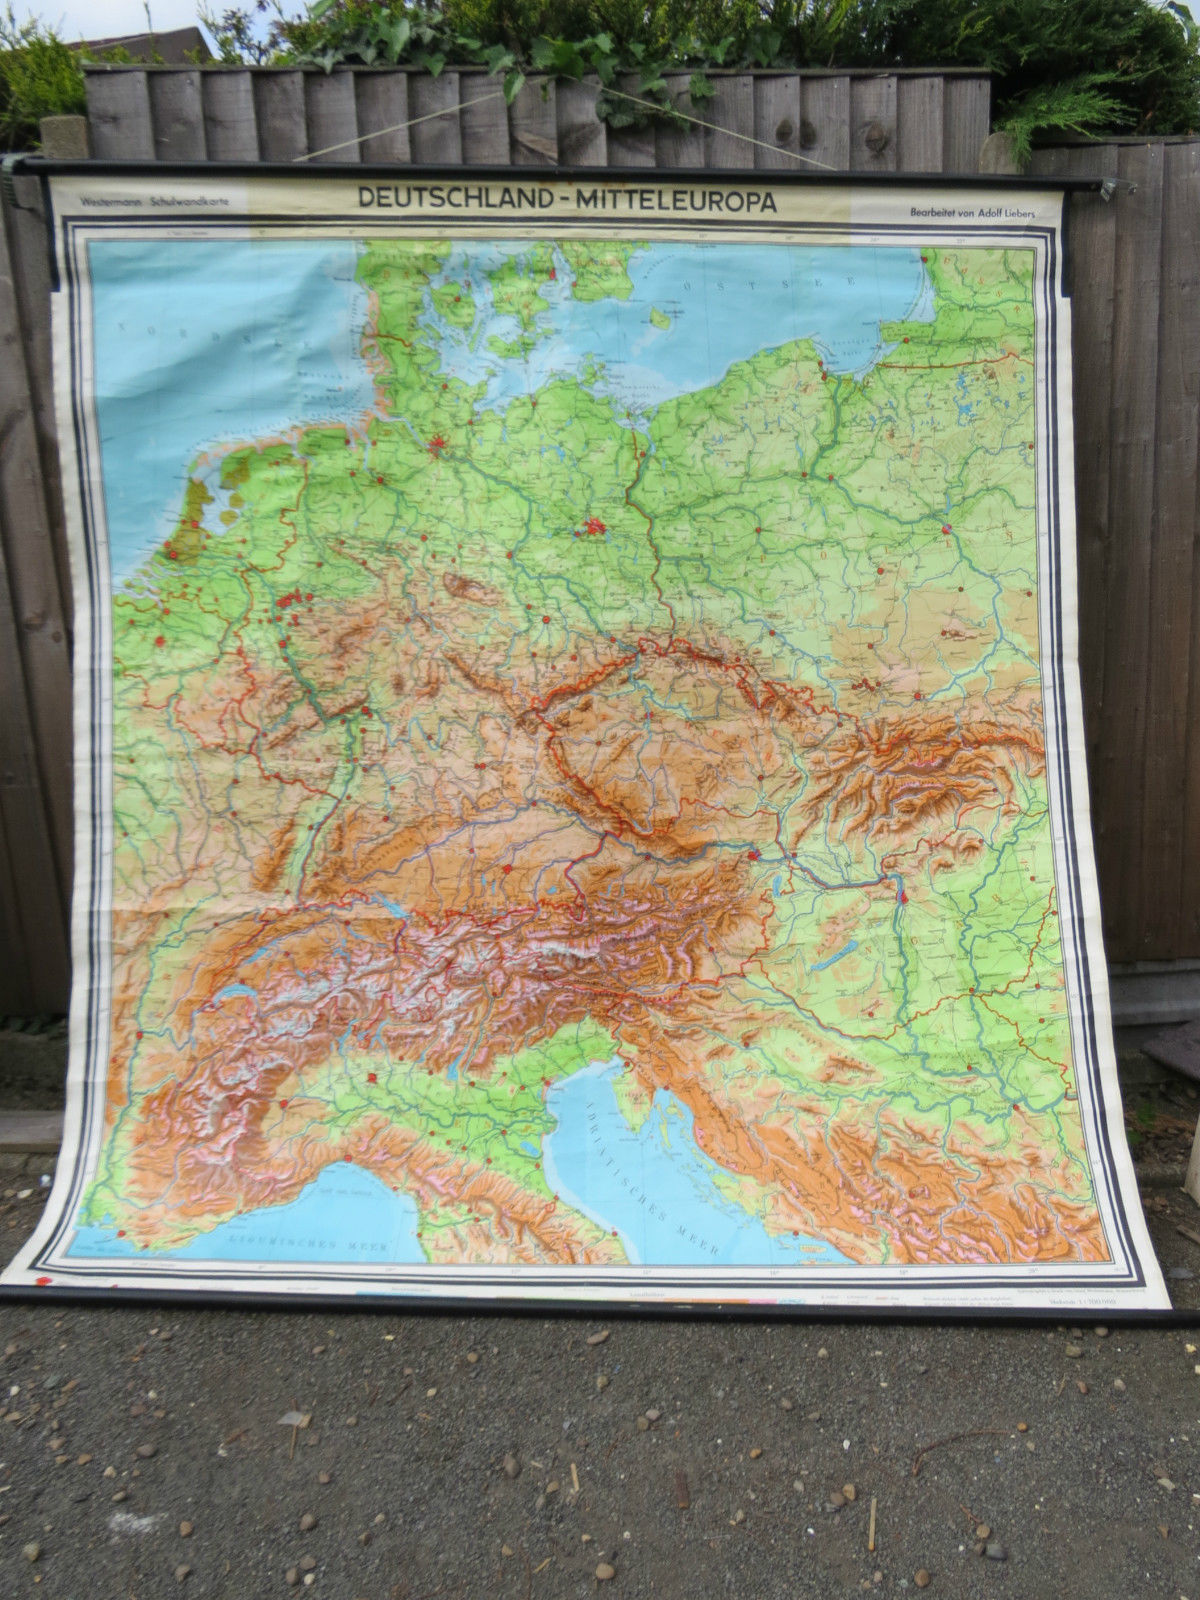 Geographical Map Of Germany.Vintage Pull Down Geographical School Wall Map Of Germany And Middle Europe